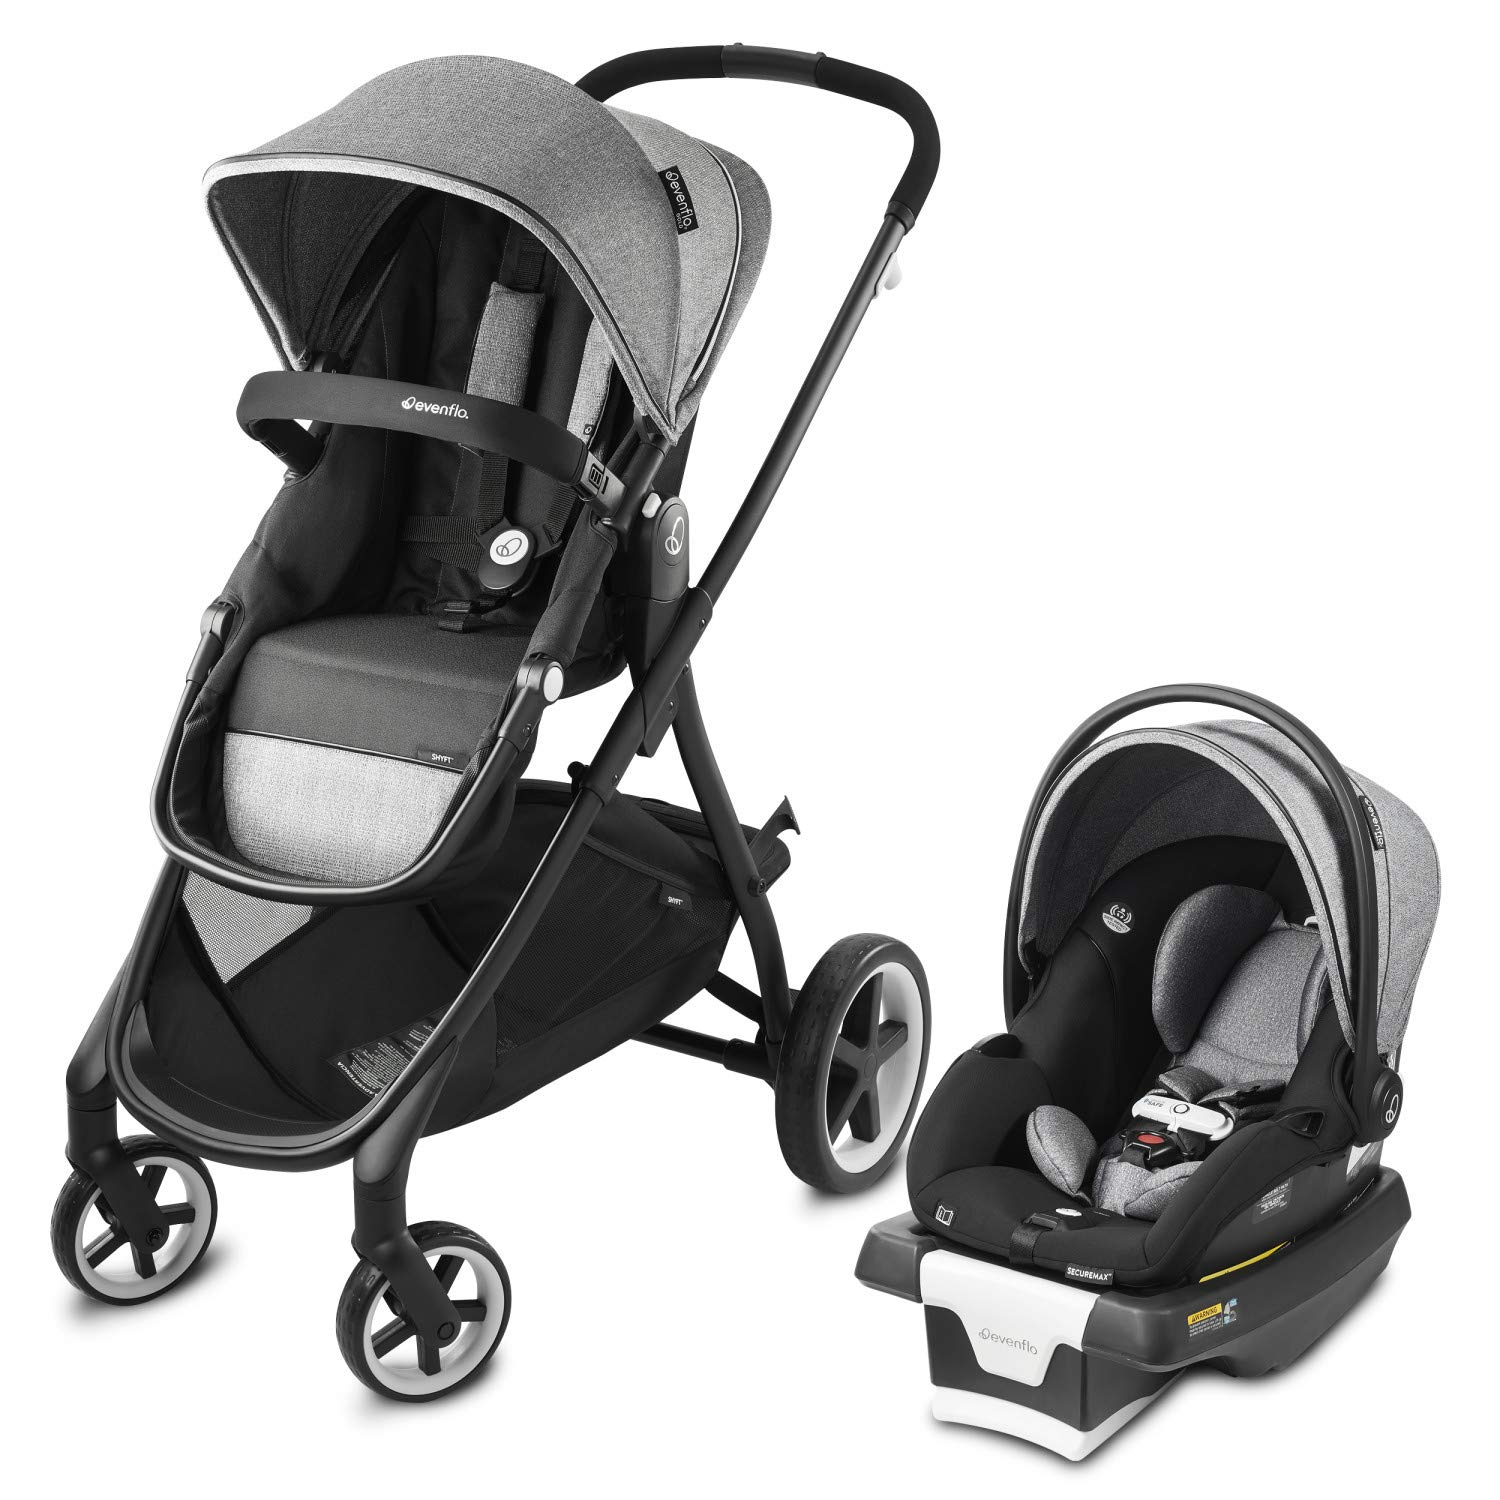 Best Evenflo Baby Products Designed for Safety 5